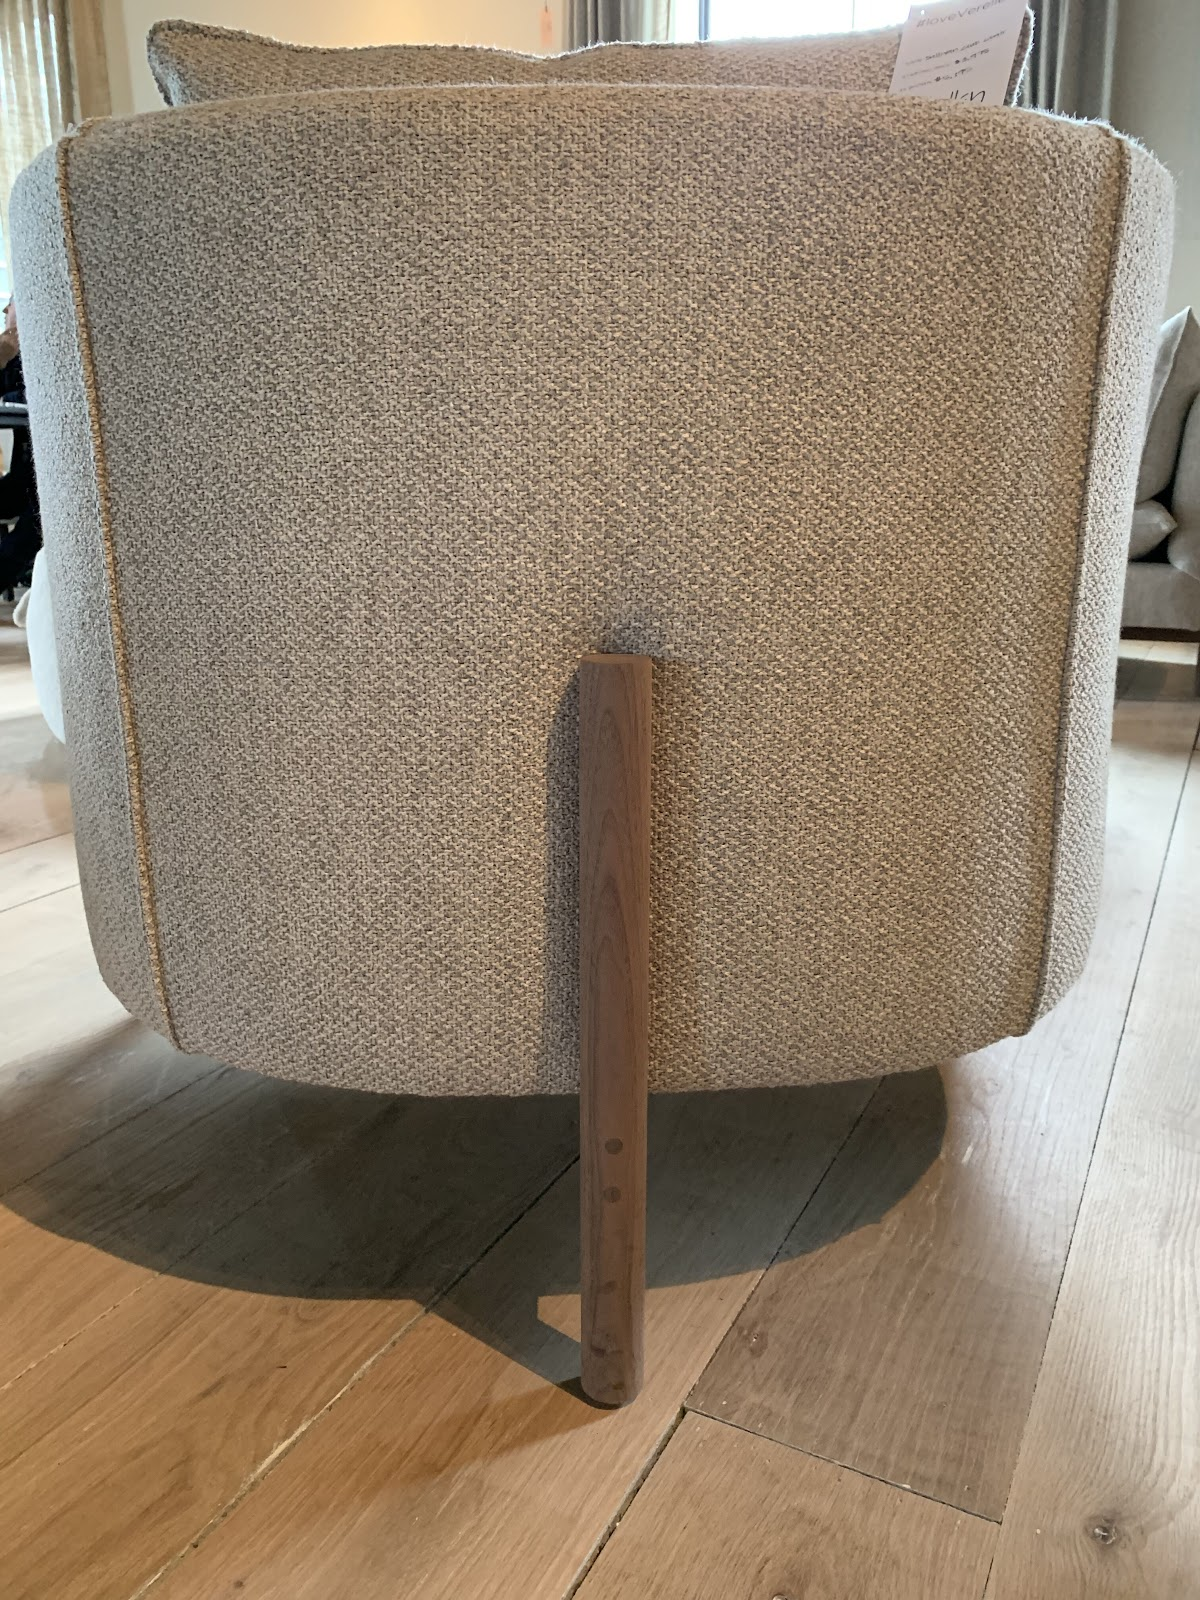 Tara Fust Design northern Atlanta, timeless, effortless home decor and furniture trends: chair back details